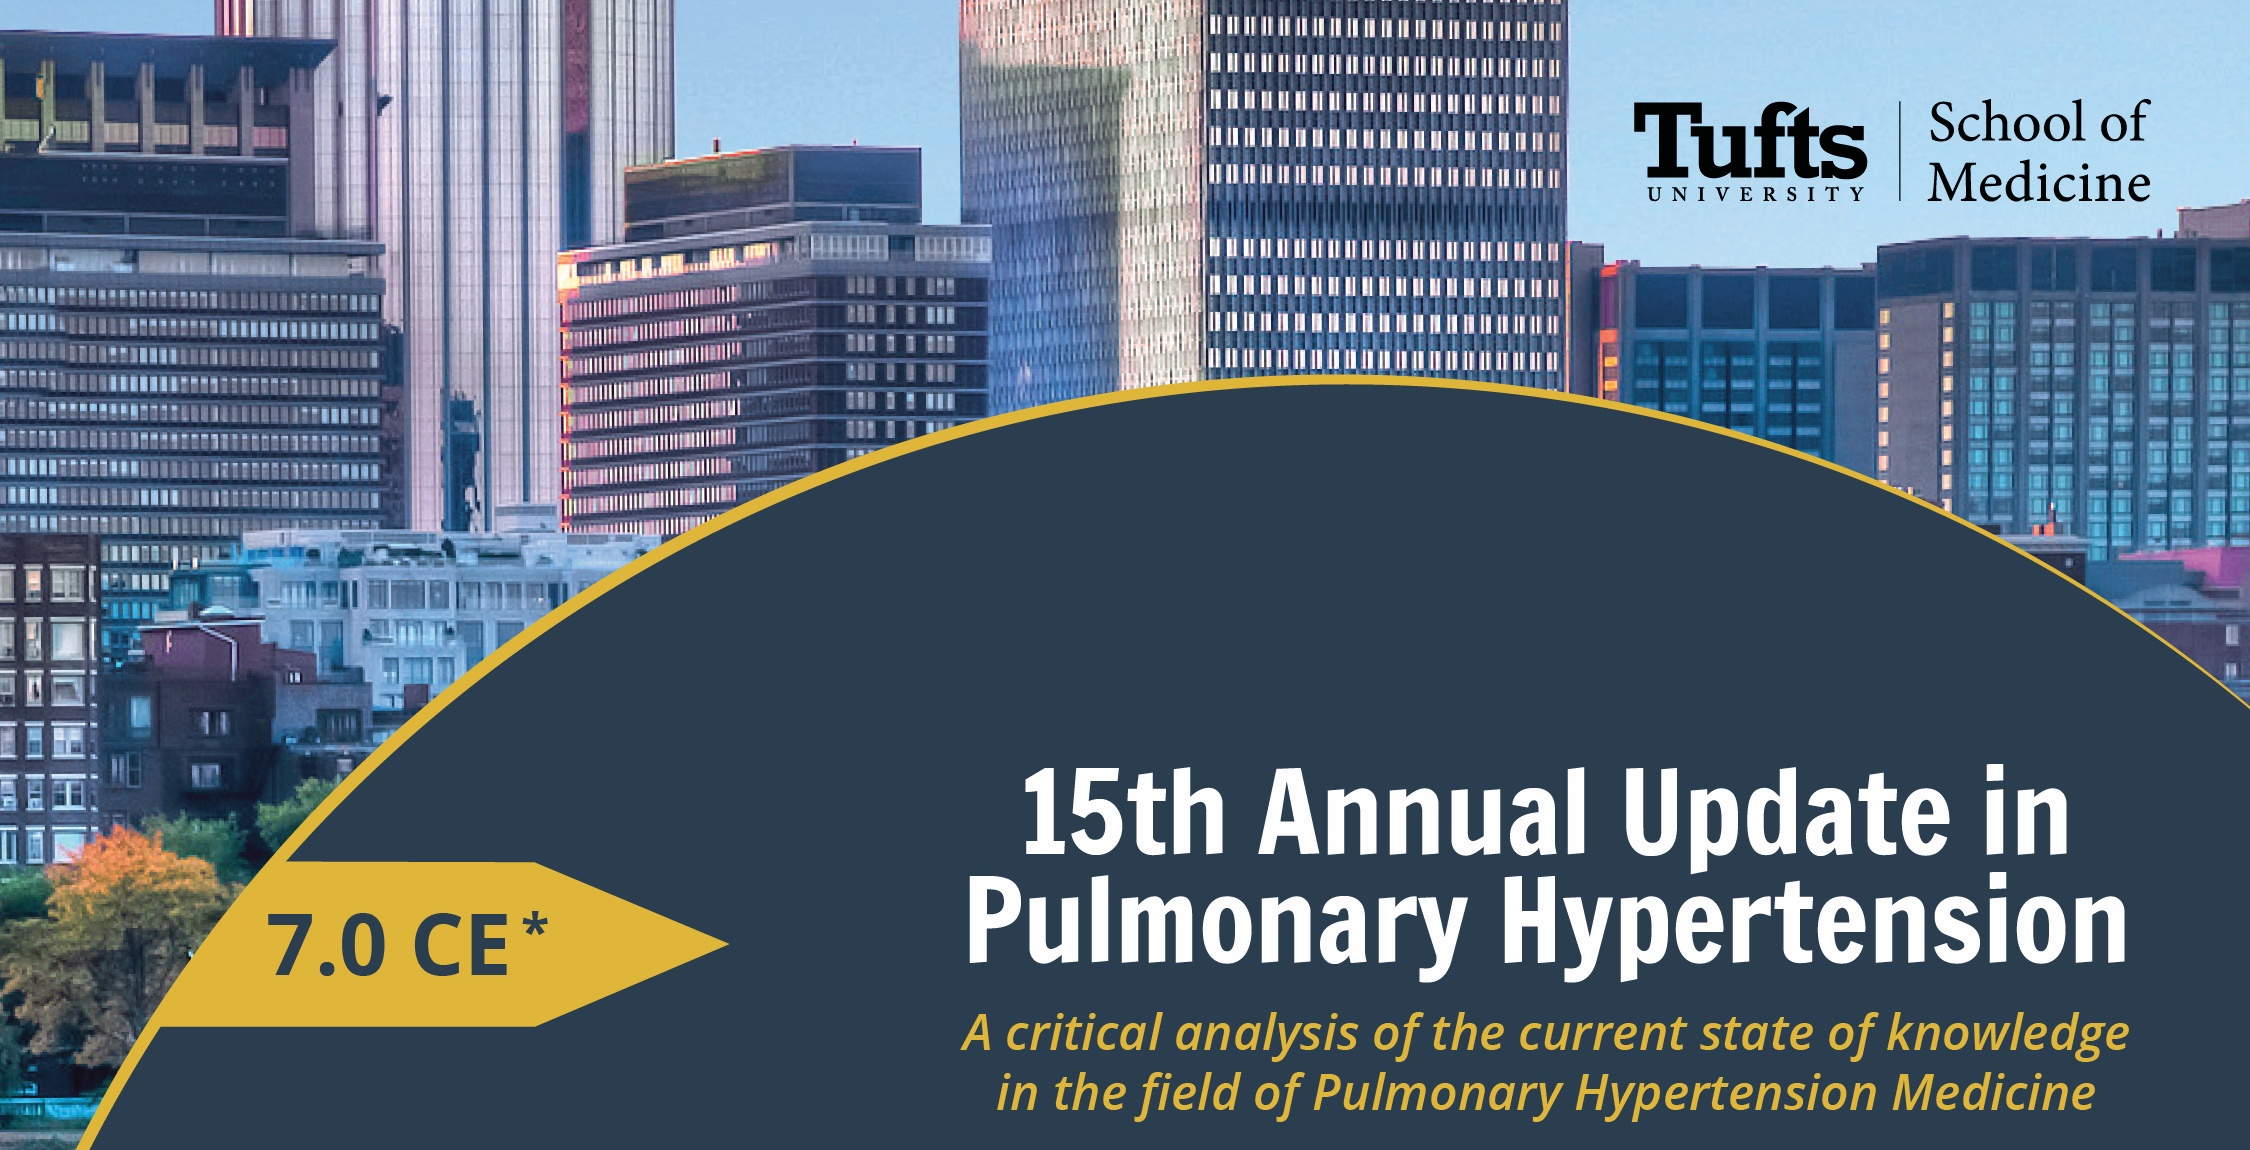 Tufts 15th Annual Update in Pulmonary Hypertension